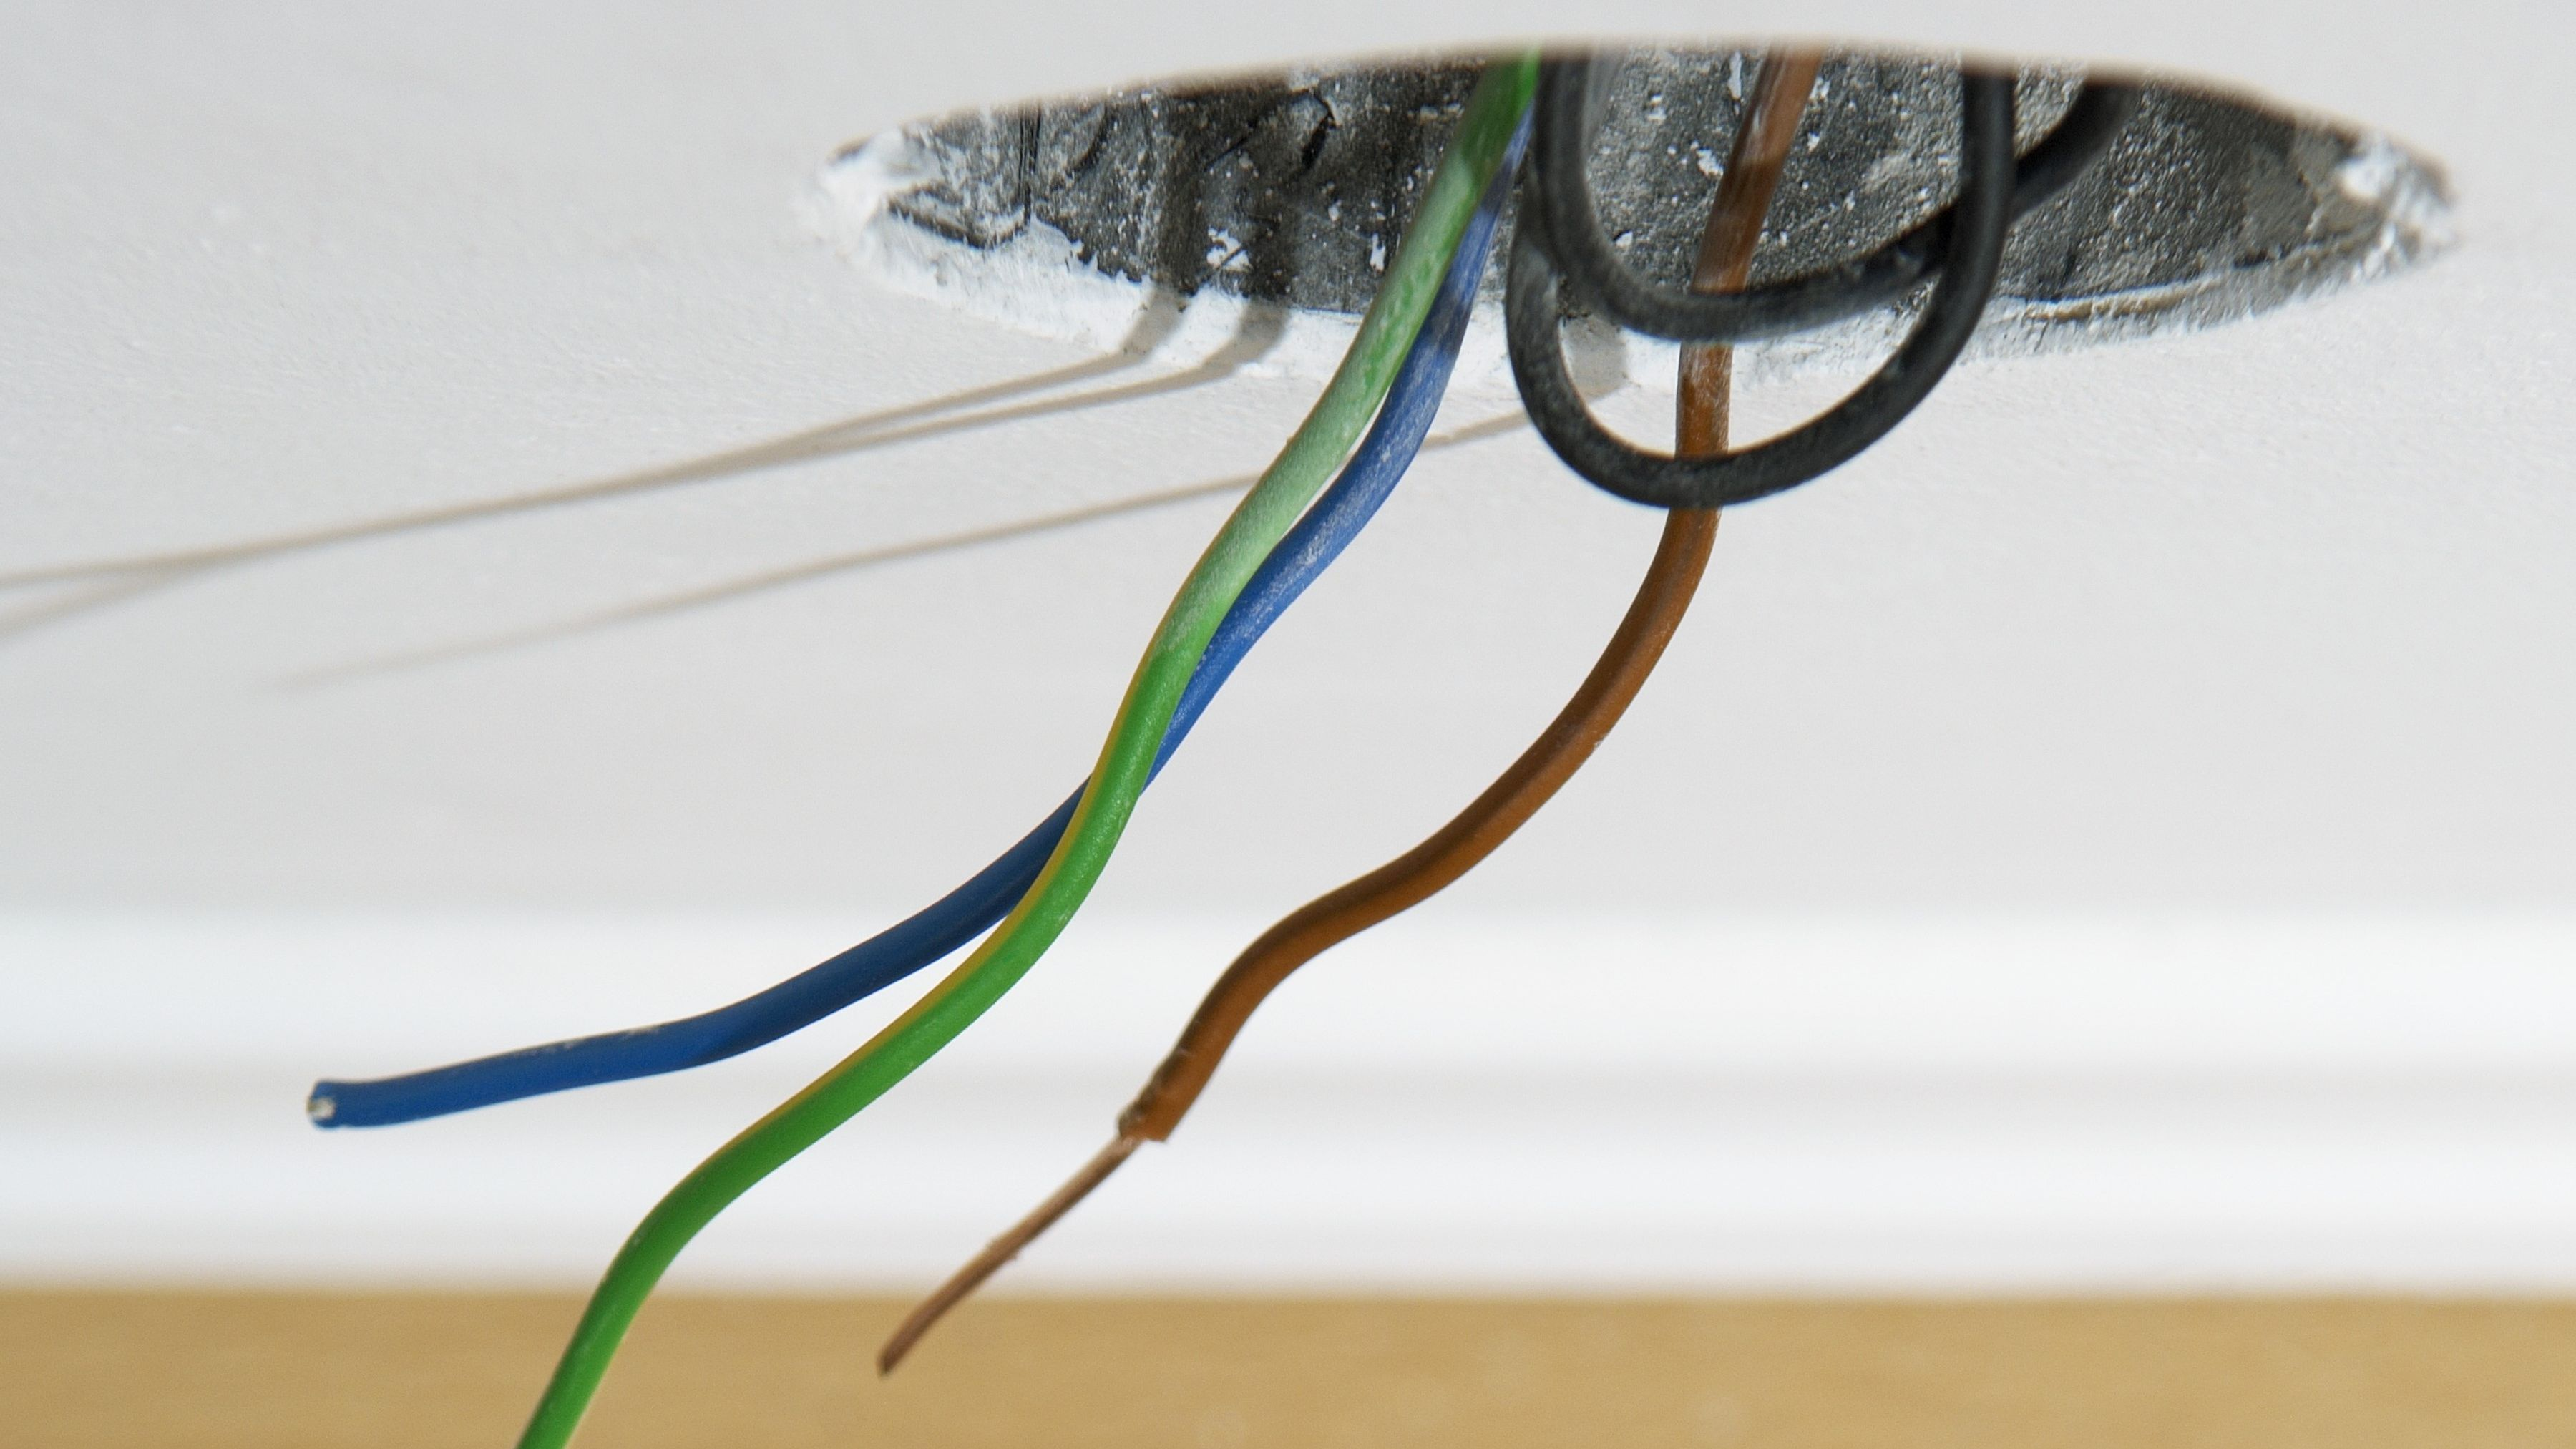 How to Terminate Electrical Wire With Wire Caps Home Wiring Ends on